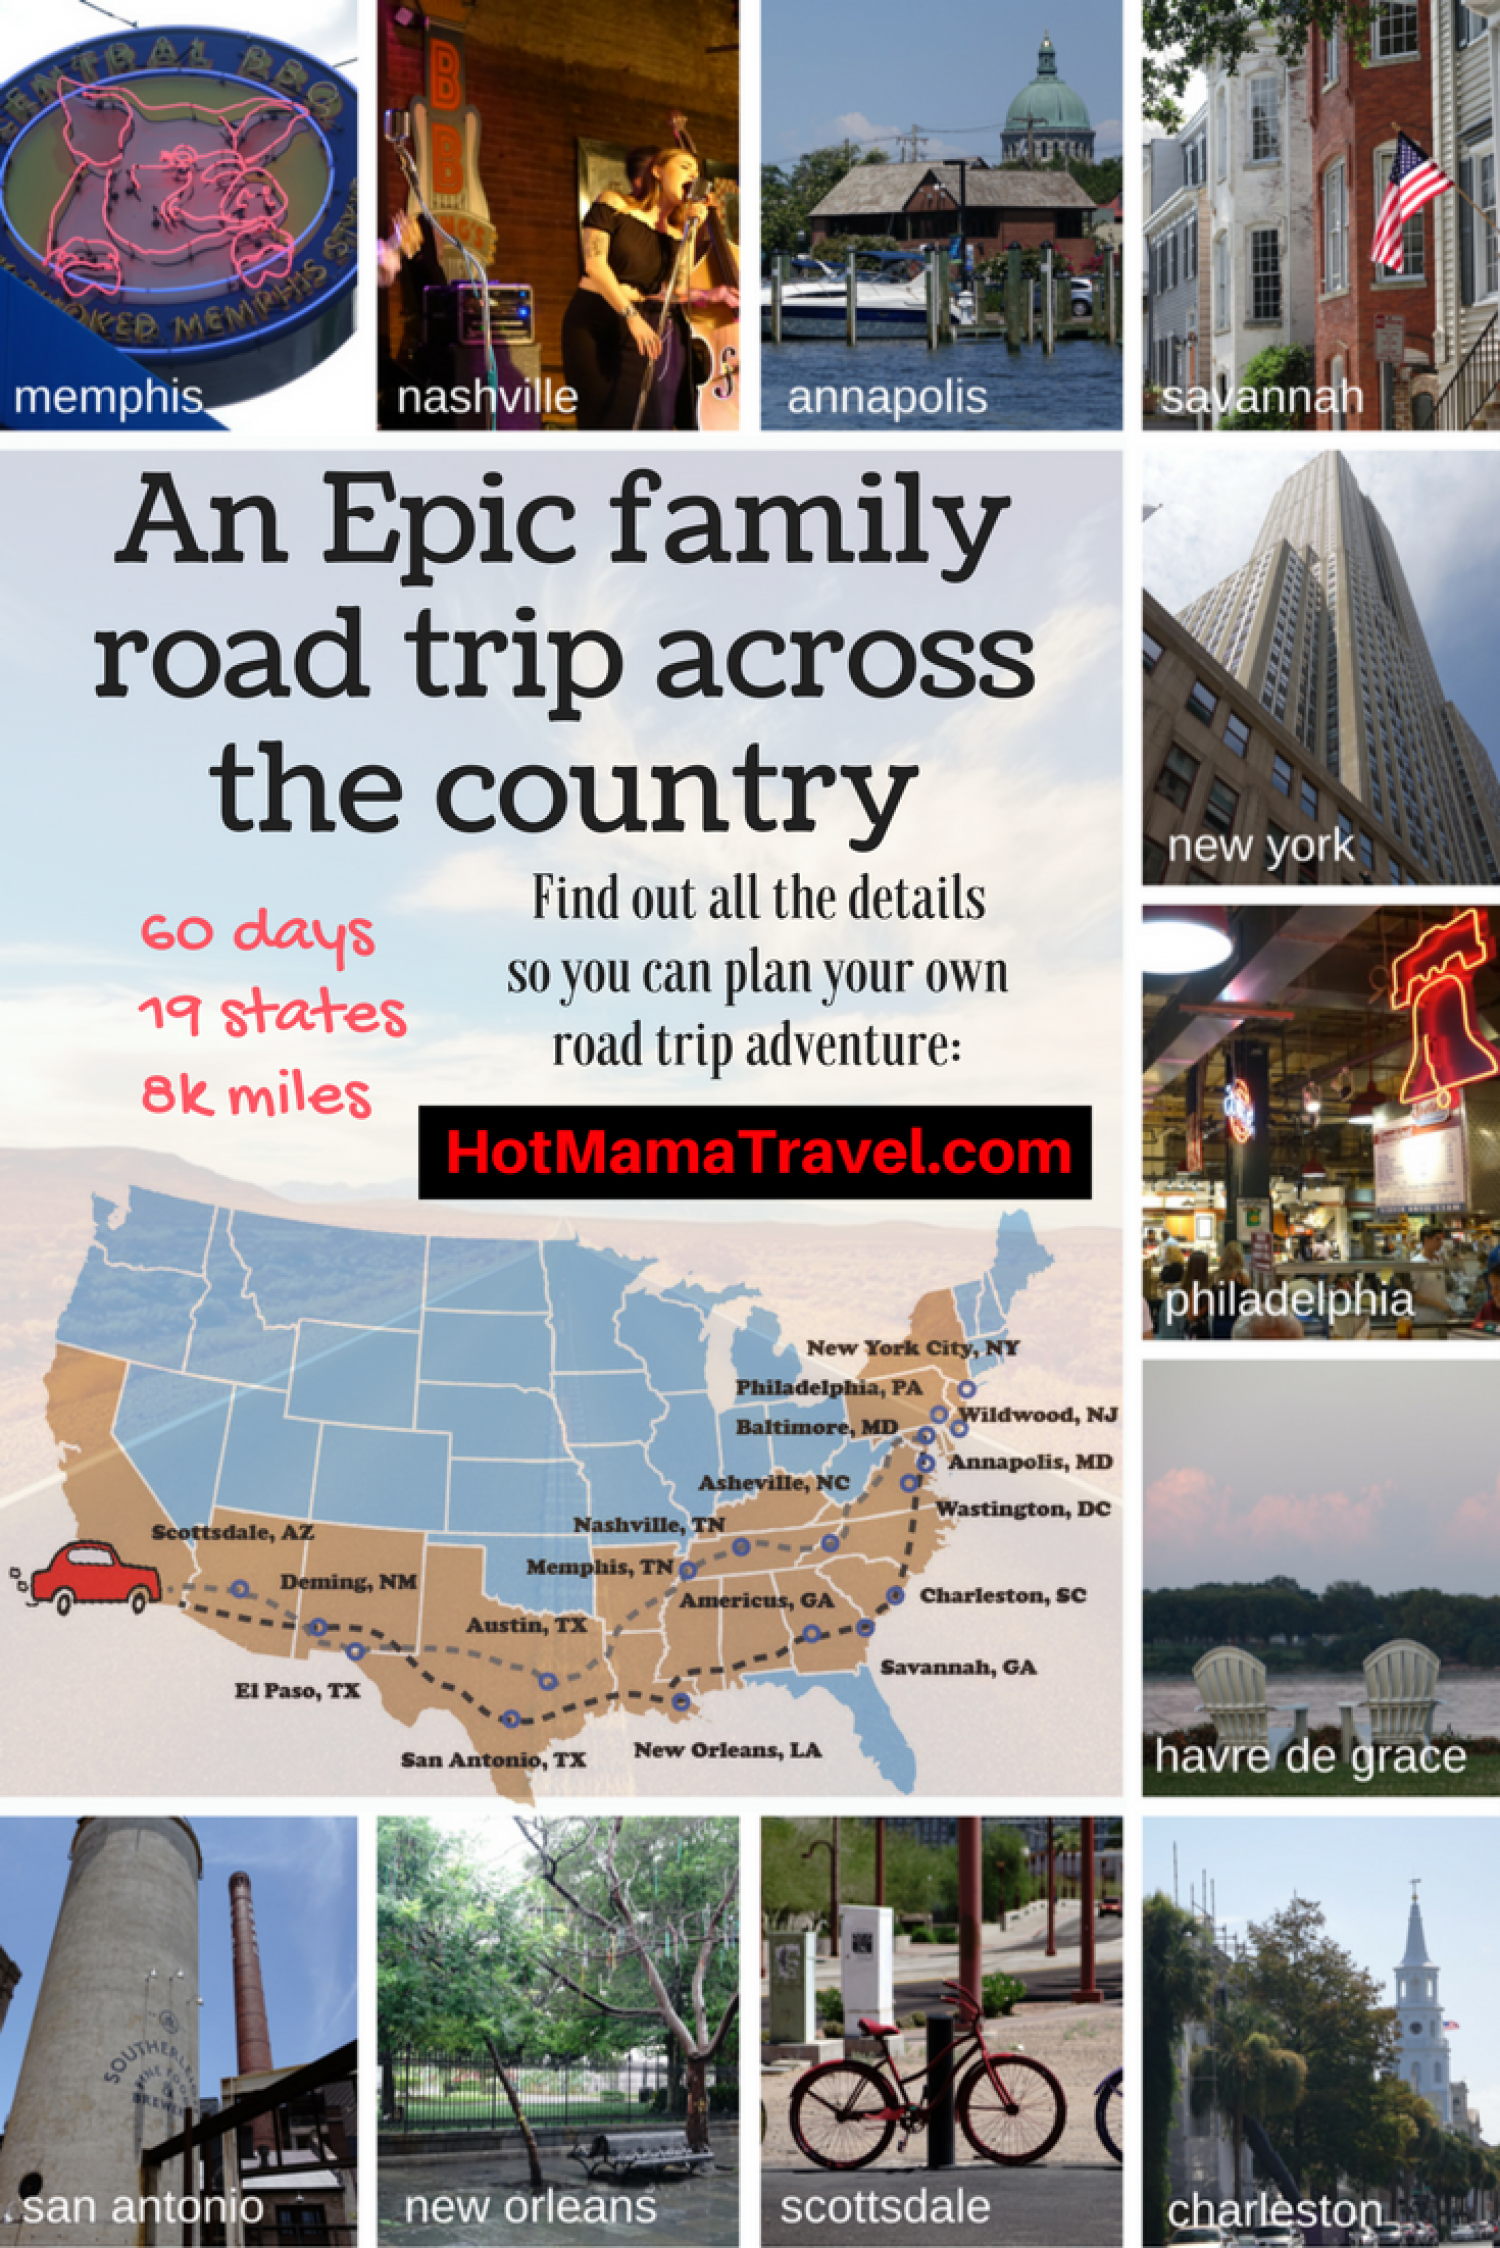 #HotMamaDoesAmerica Epic Family Road Trip Across US: 19 States, 60 days Infographic